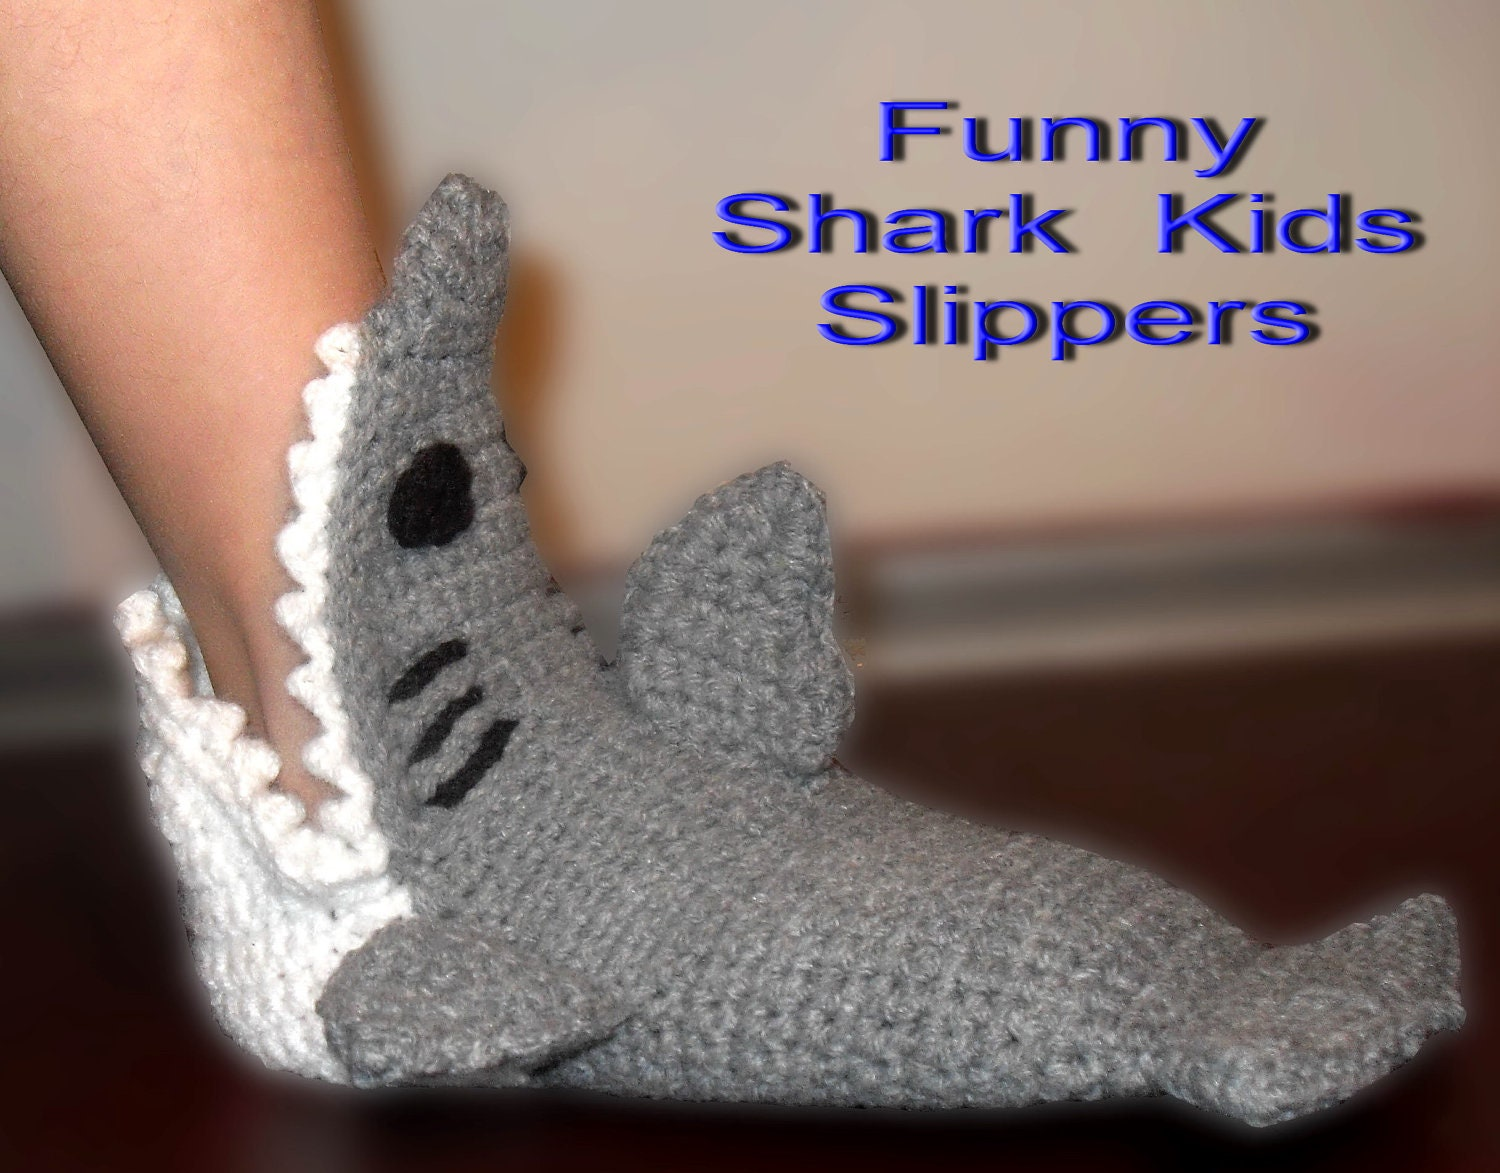 Crochet Shark Shoes Free Pattern : Shark slippers crochet pattern-Kids sizes by UniquePcrochet